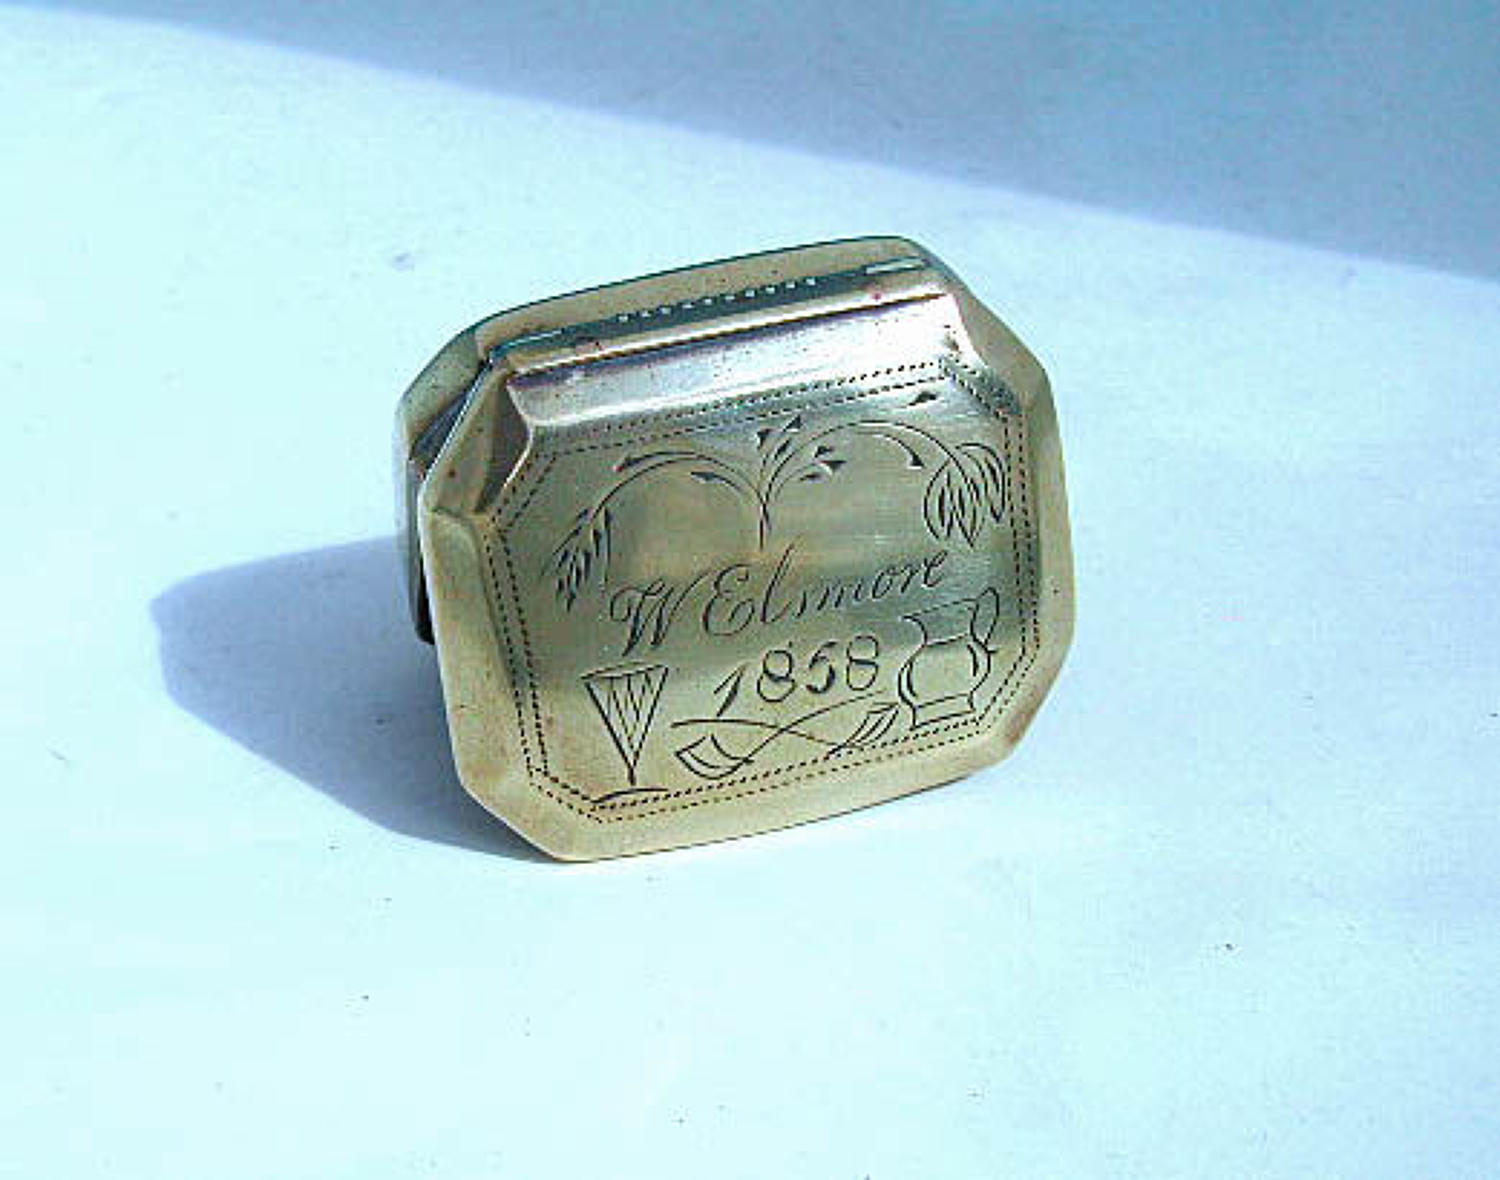 Antique Metalware Dated Brass Snuff Box Engraved W. Elsmore - 1858.